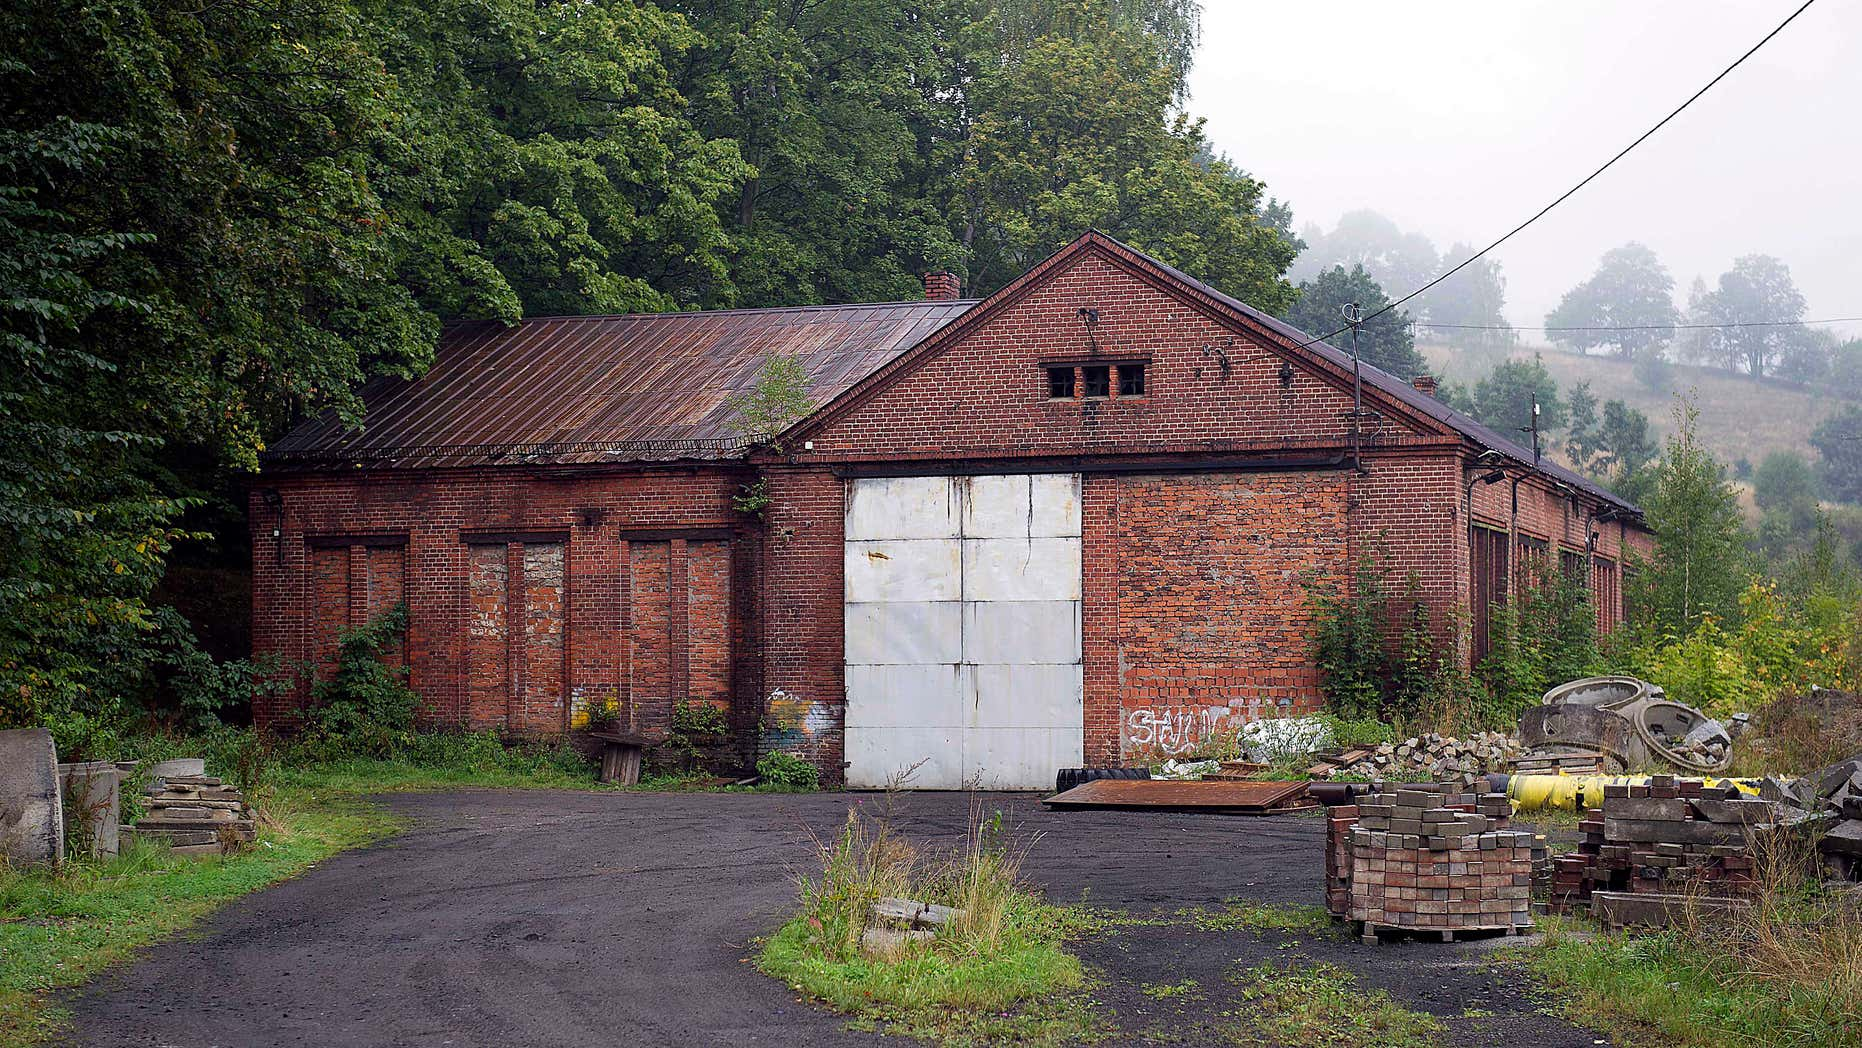 Sept. 11, 2015: The abandoned building of a German nazi-era railway installation in Walim, near Walbrzych, in Poland.